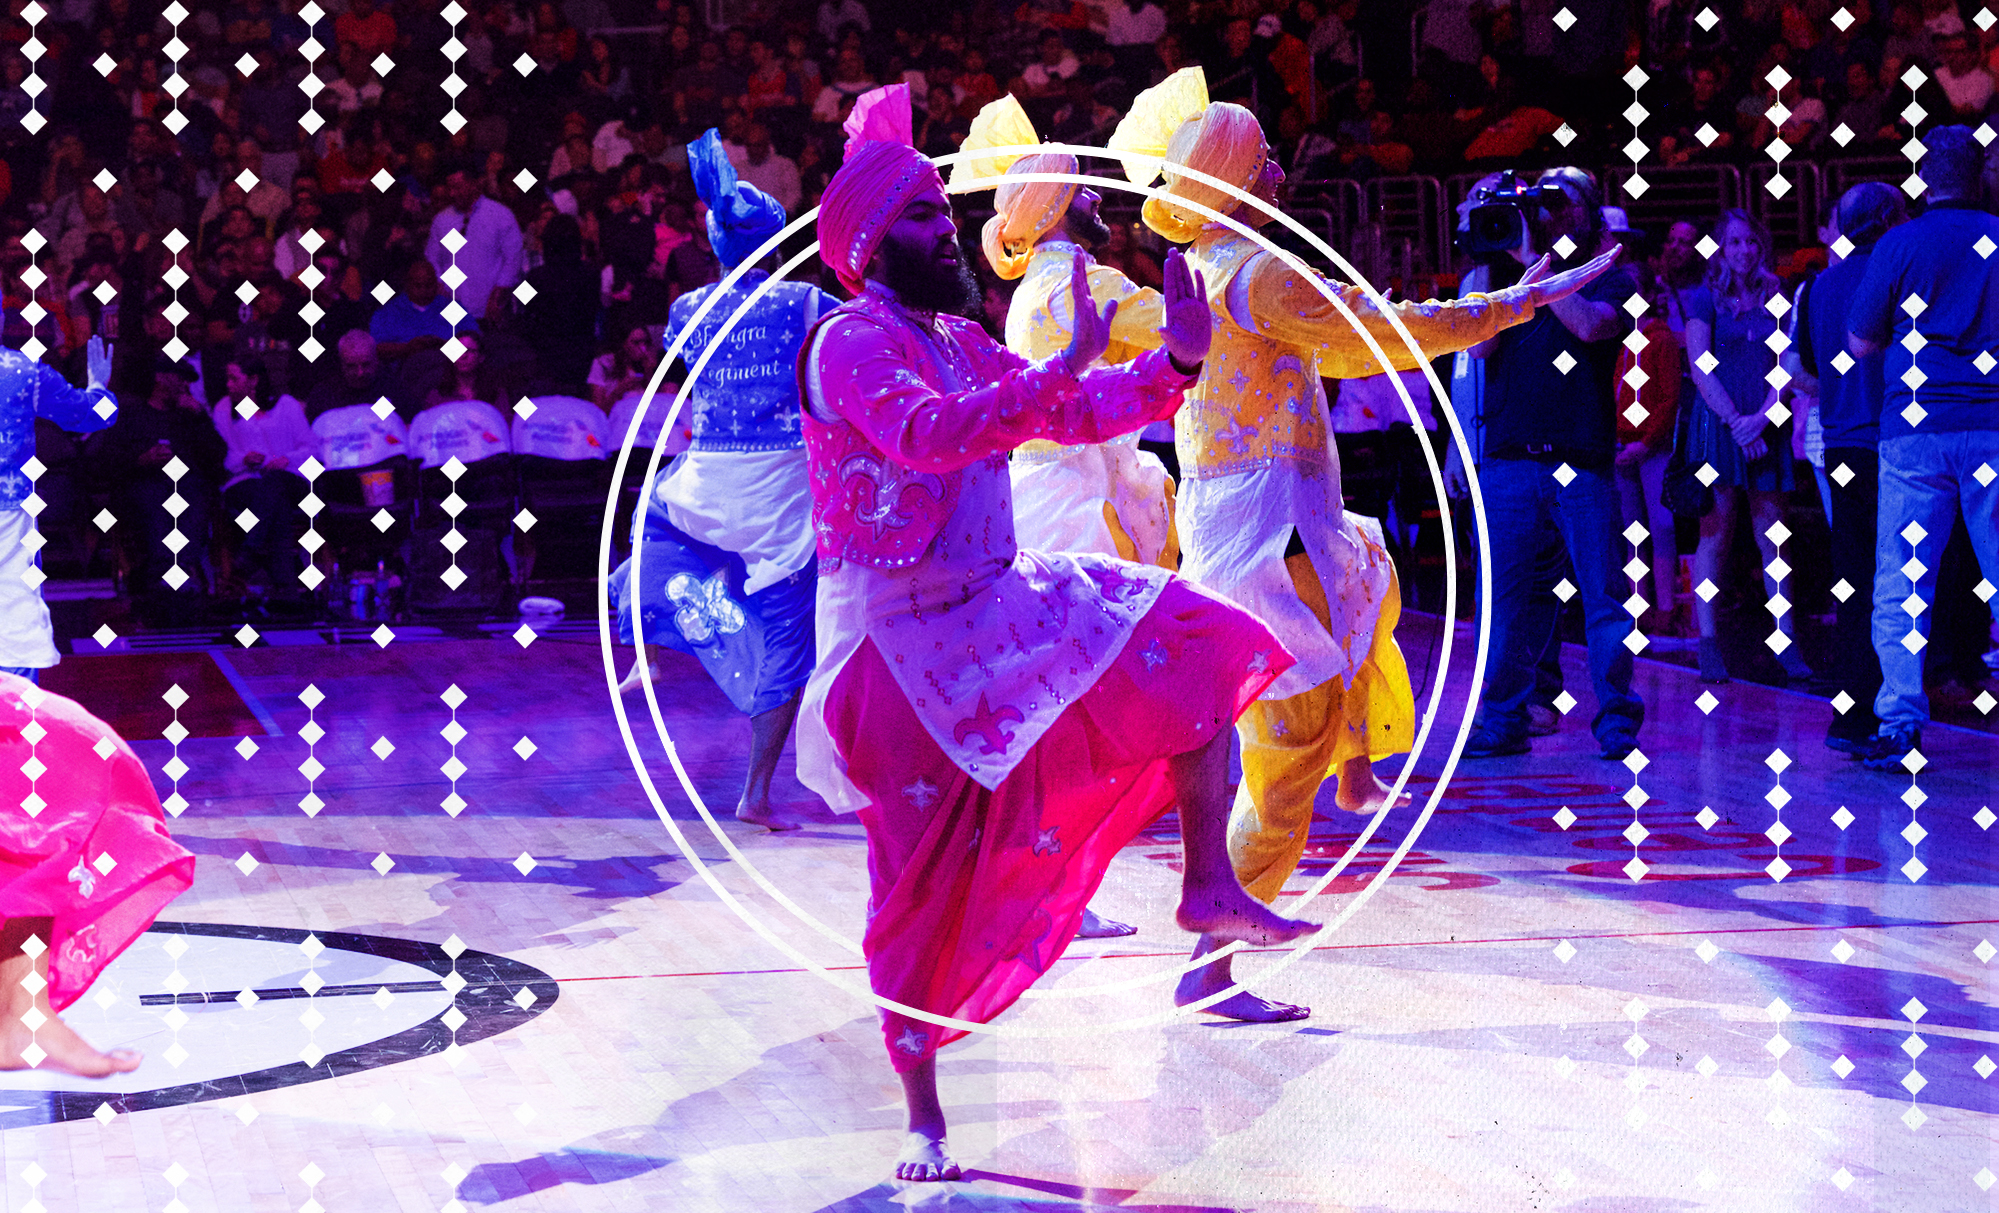 A Sikh man in pink-colored traditional clothing dancing on the home court of the Los Angeles Clippers as part of a group of Sikh dancers.